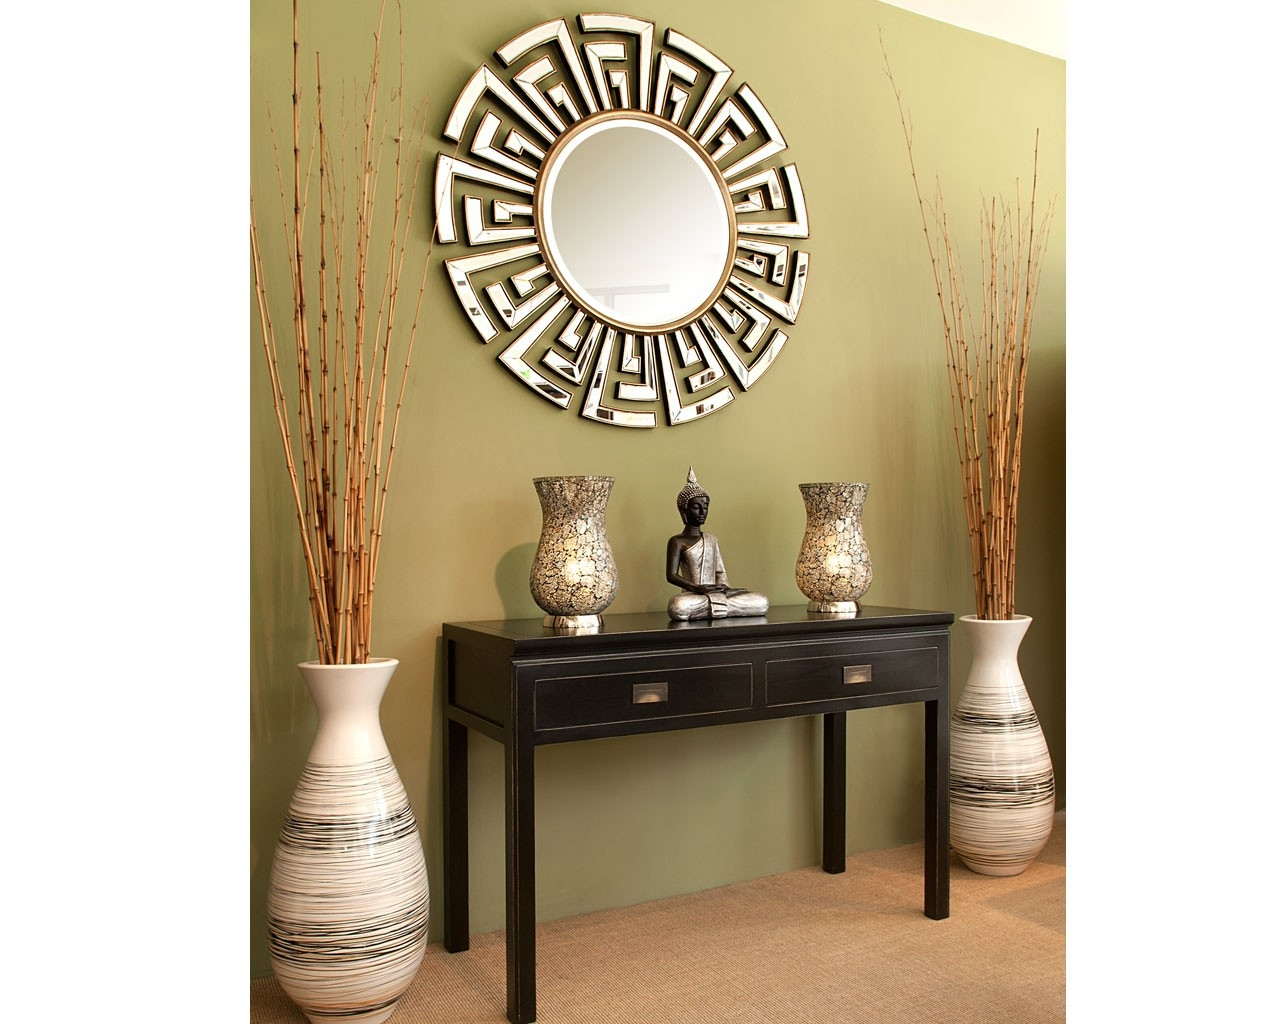 Contemporary Art Deco Round Mirror Statement Circular Mirrors Pertaining To Round Art Deco Mirror (Image 10 of 15)